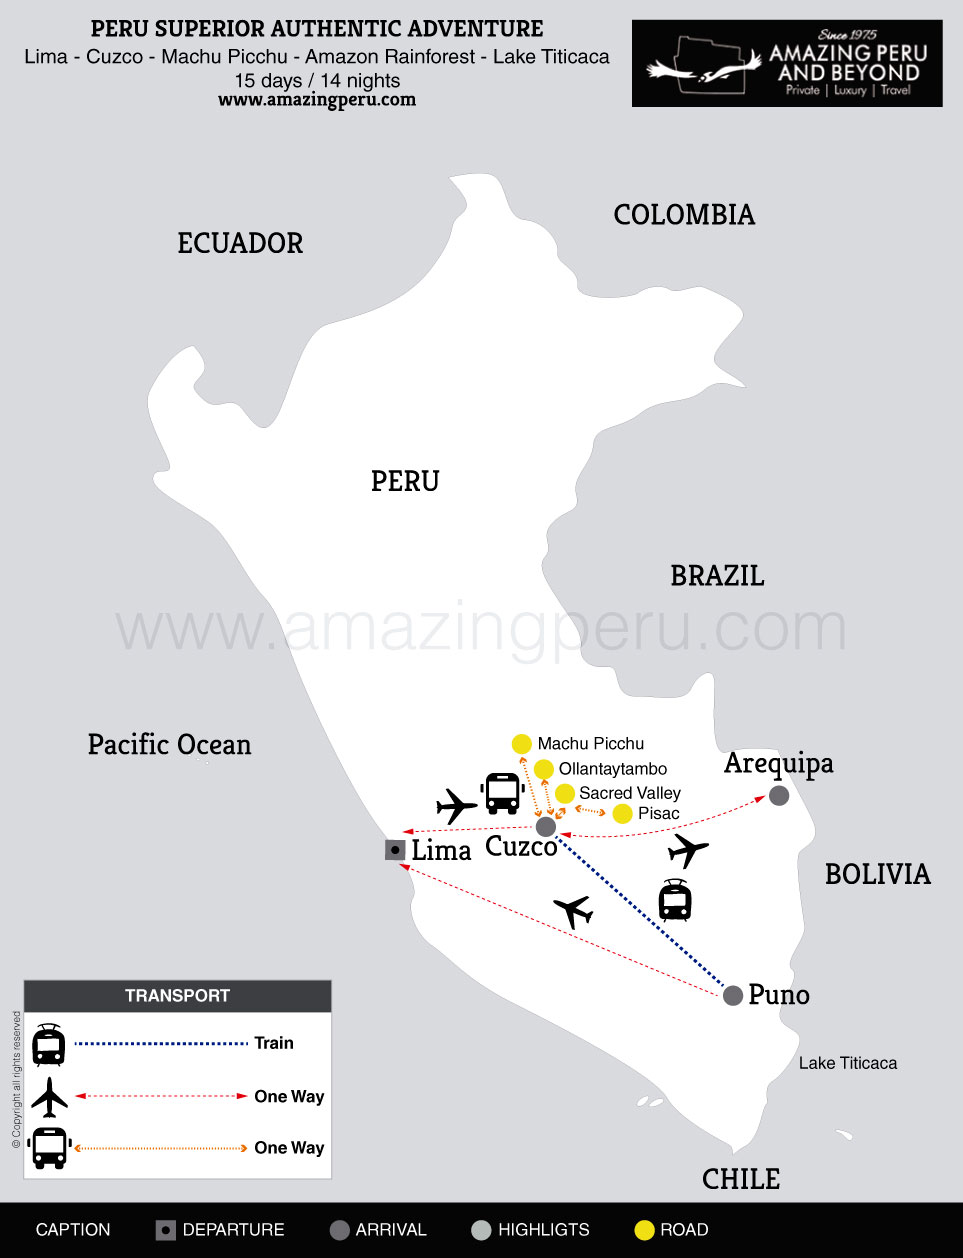 2021 Peru Superior Authentic Adventure - 15 days / 14 nights.